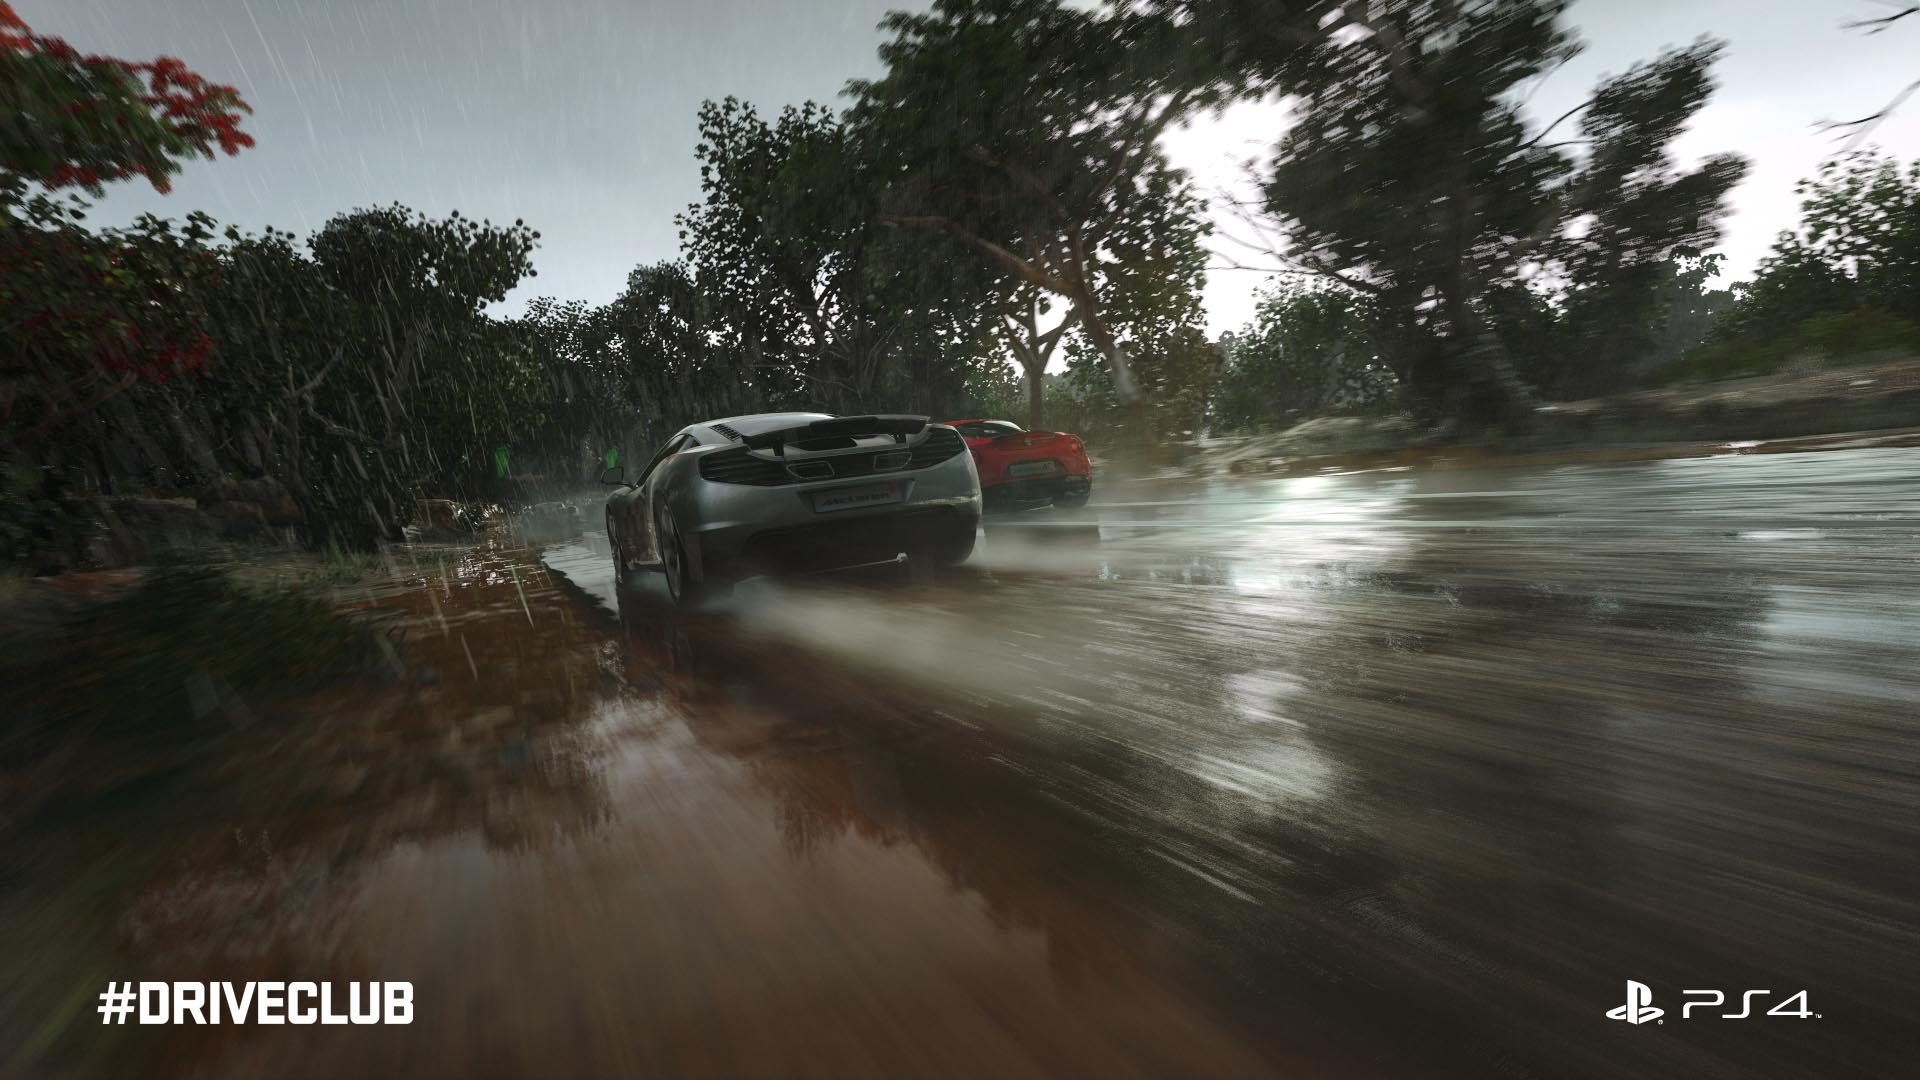 Since its rocky launch, Driveclub has shaped up to be an absolutely gorgeous showcase for the PS4, with dynamic weather and day/night cycles that dramatically alter the racetrack. Gameplay niggles have been diligently patched, and the promised free version for Playstation Plus subscribers has recently launched, which is sure to bring an influx of new players. | <b>For:</b> PS4